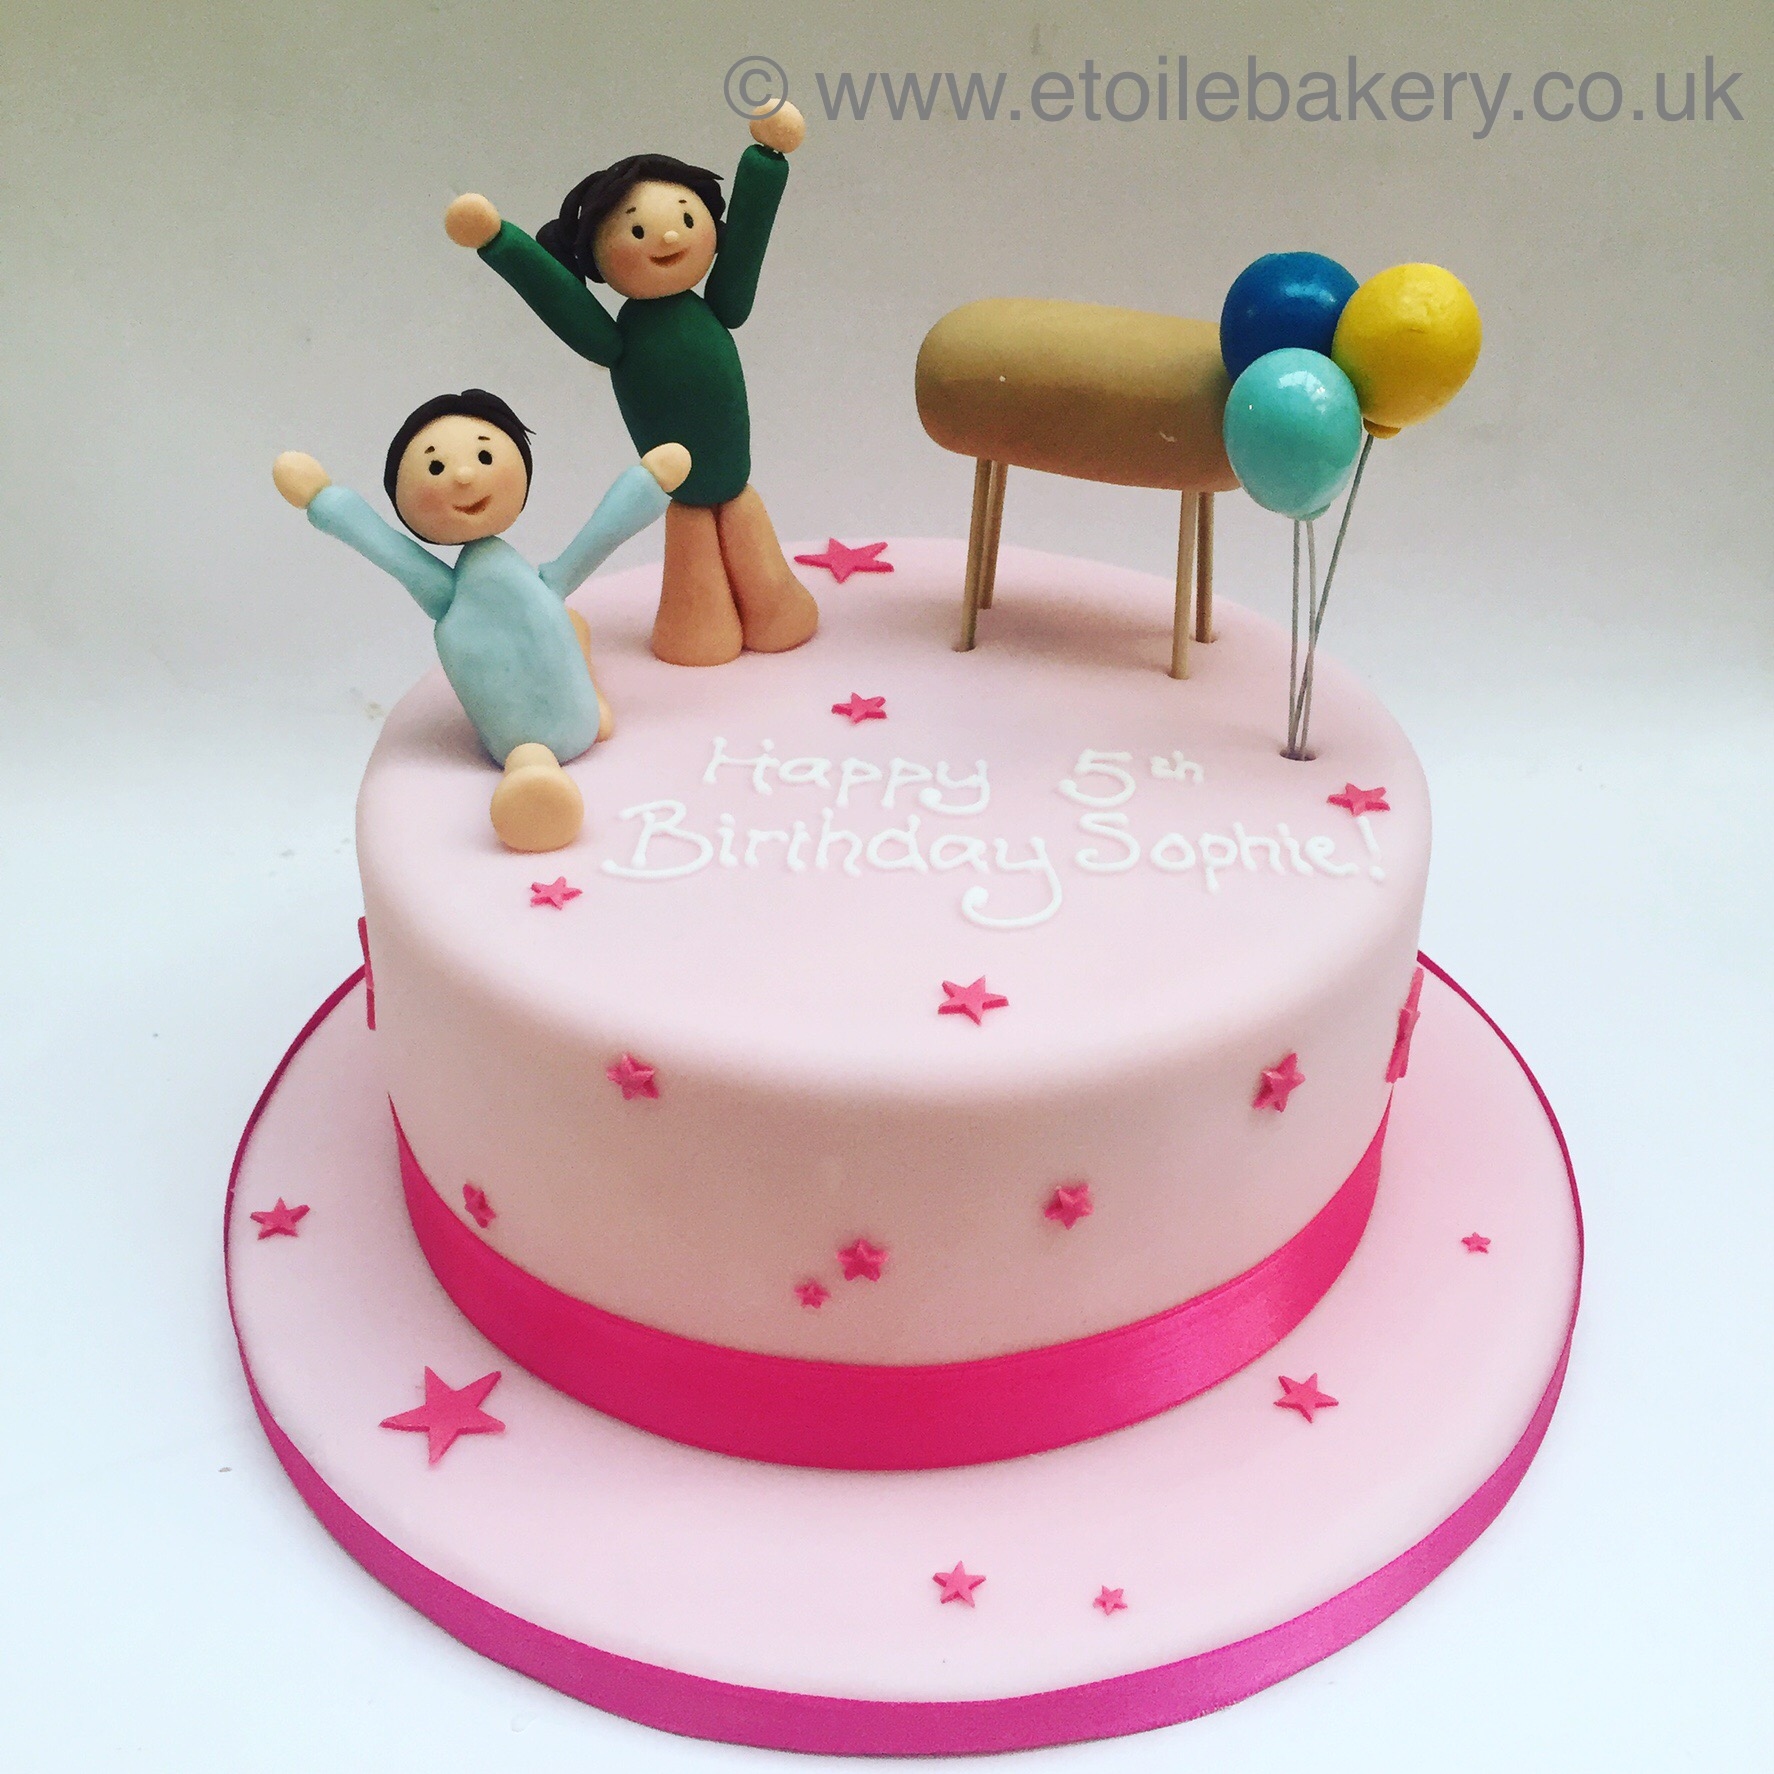 Fabulous Gymnastics Birthday Cake Etoile Bakery Personalised Birthday Cards Petedlily Jamesorg